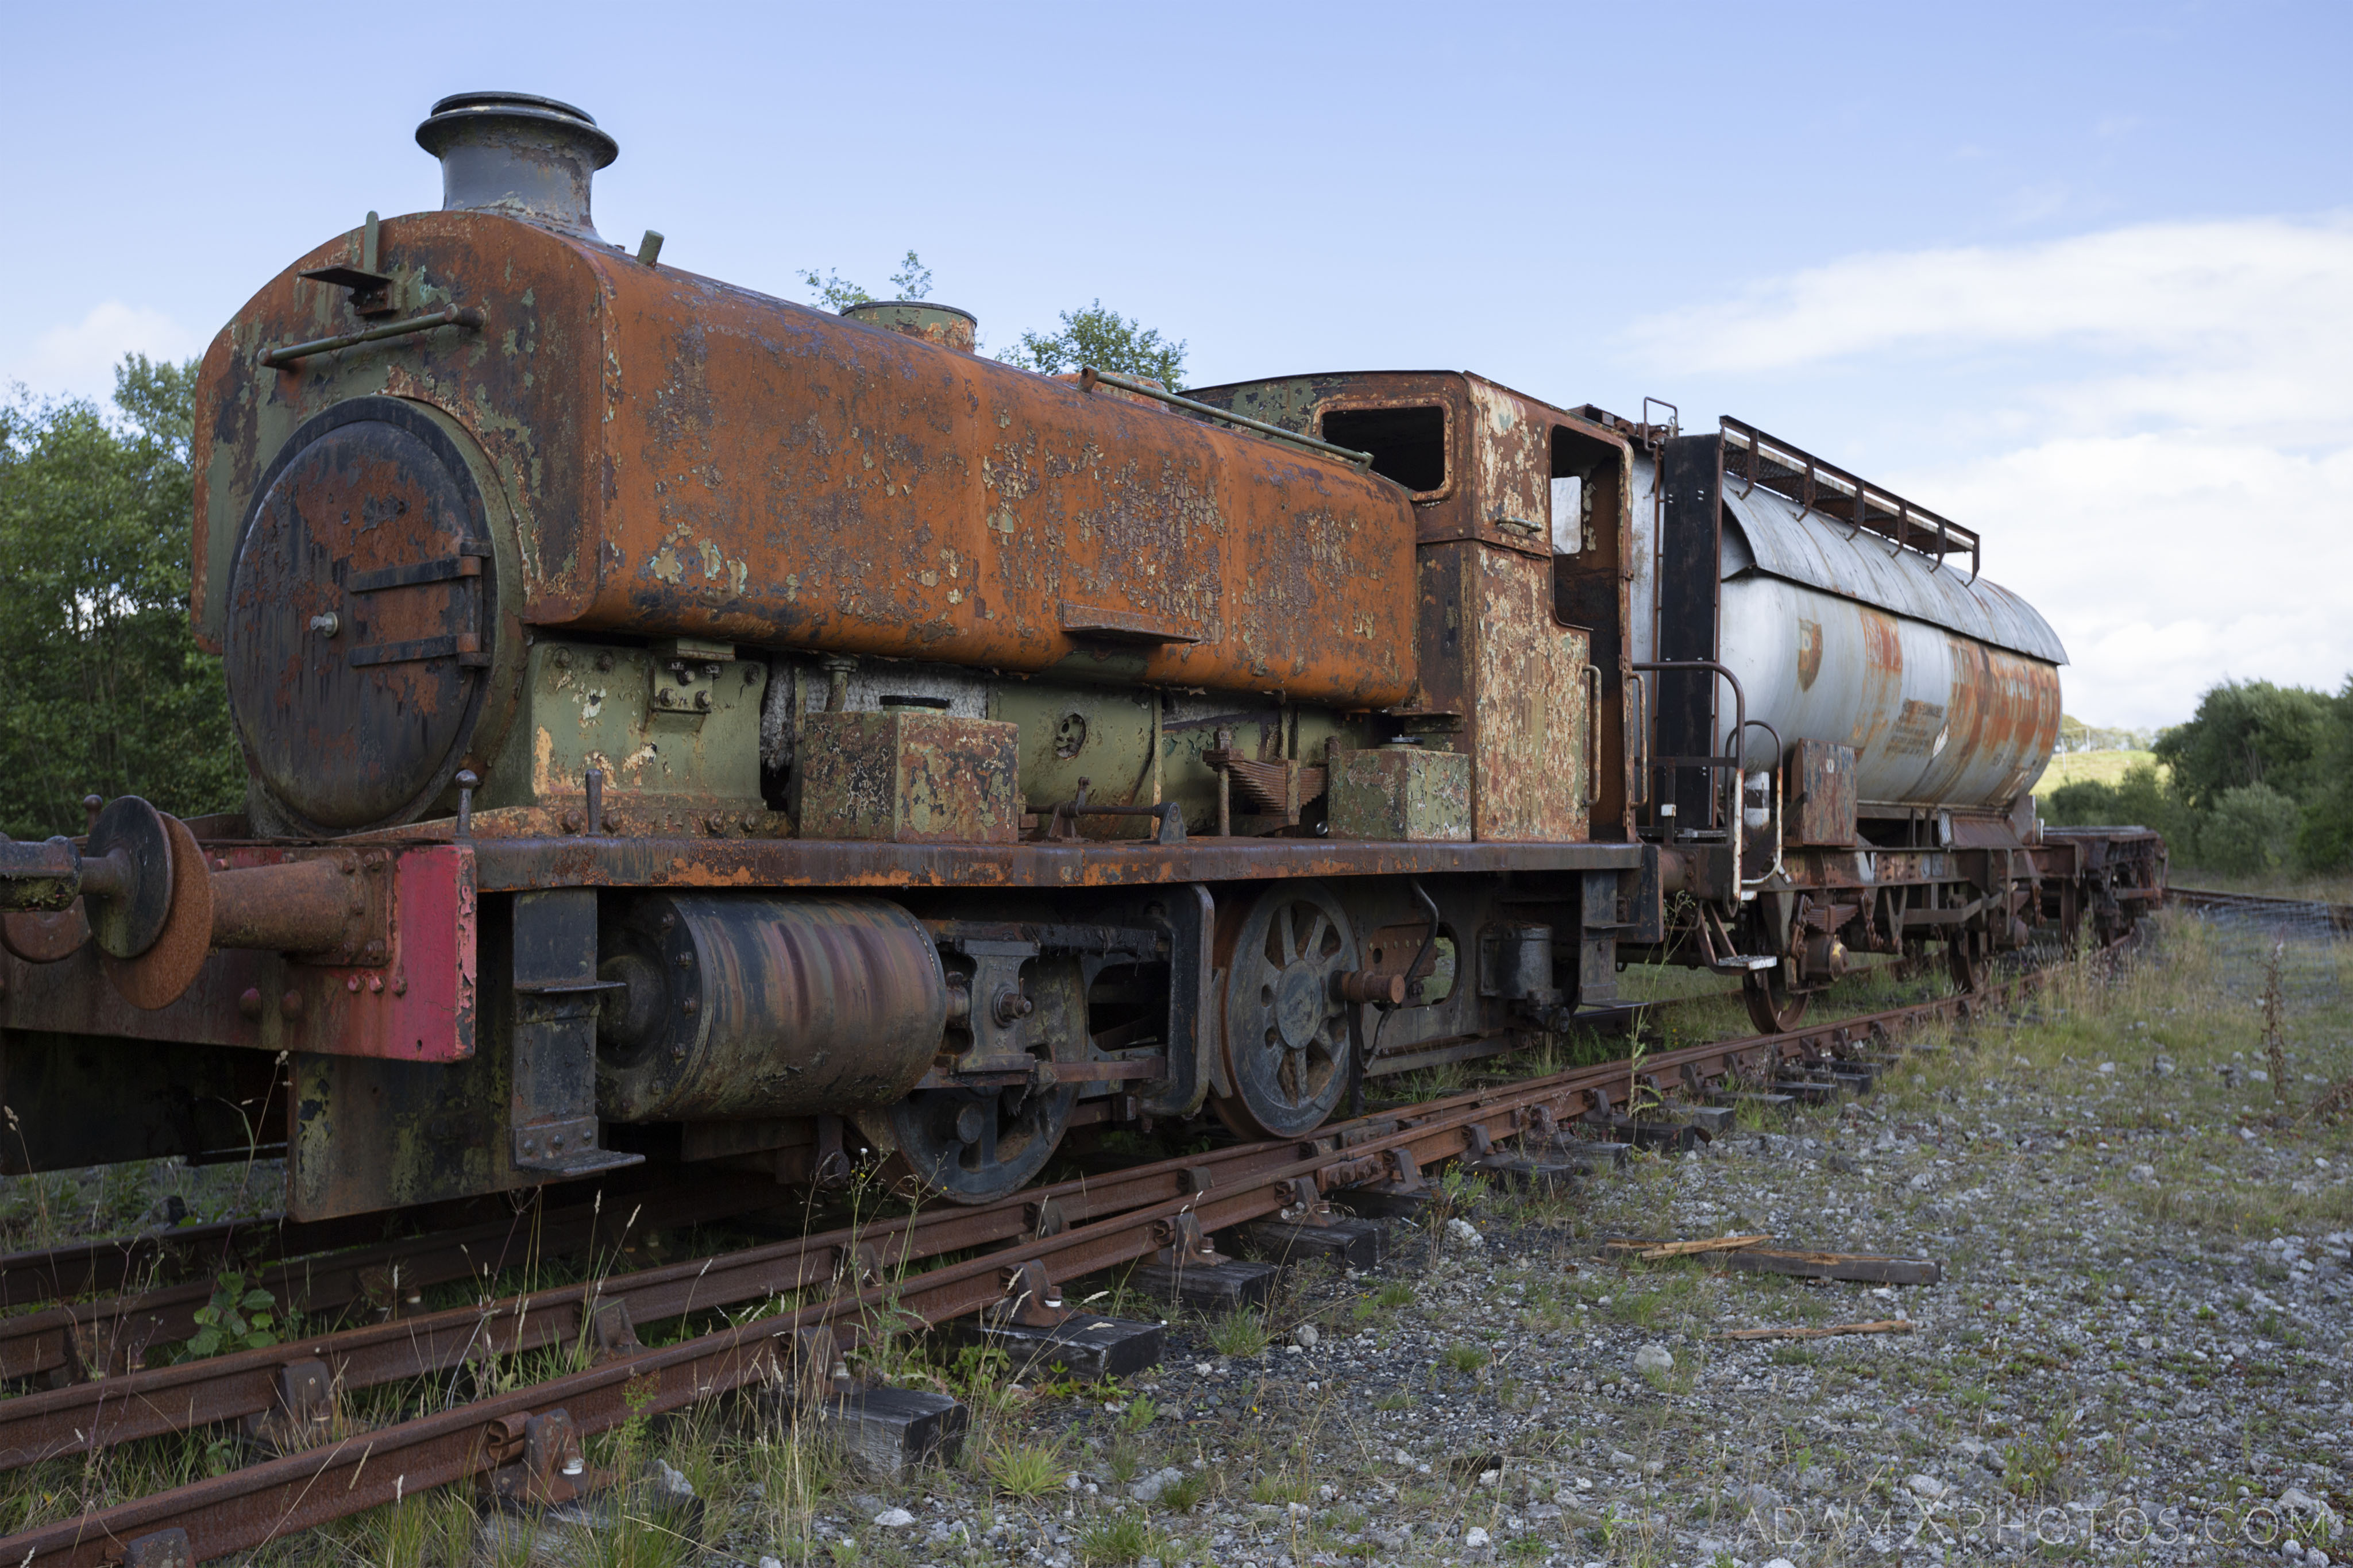 Abandoned Trains Waterside Dunaskin Adam X Urbex Urban Exploration Access 2018 Abandoned decay lost forgotten derelict location creepy haunting eerie